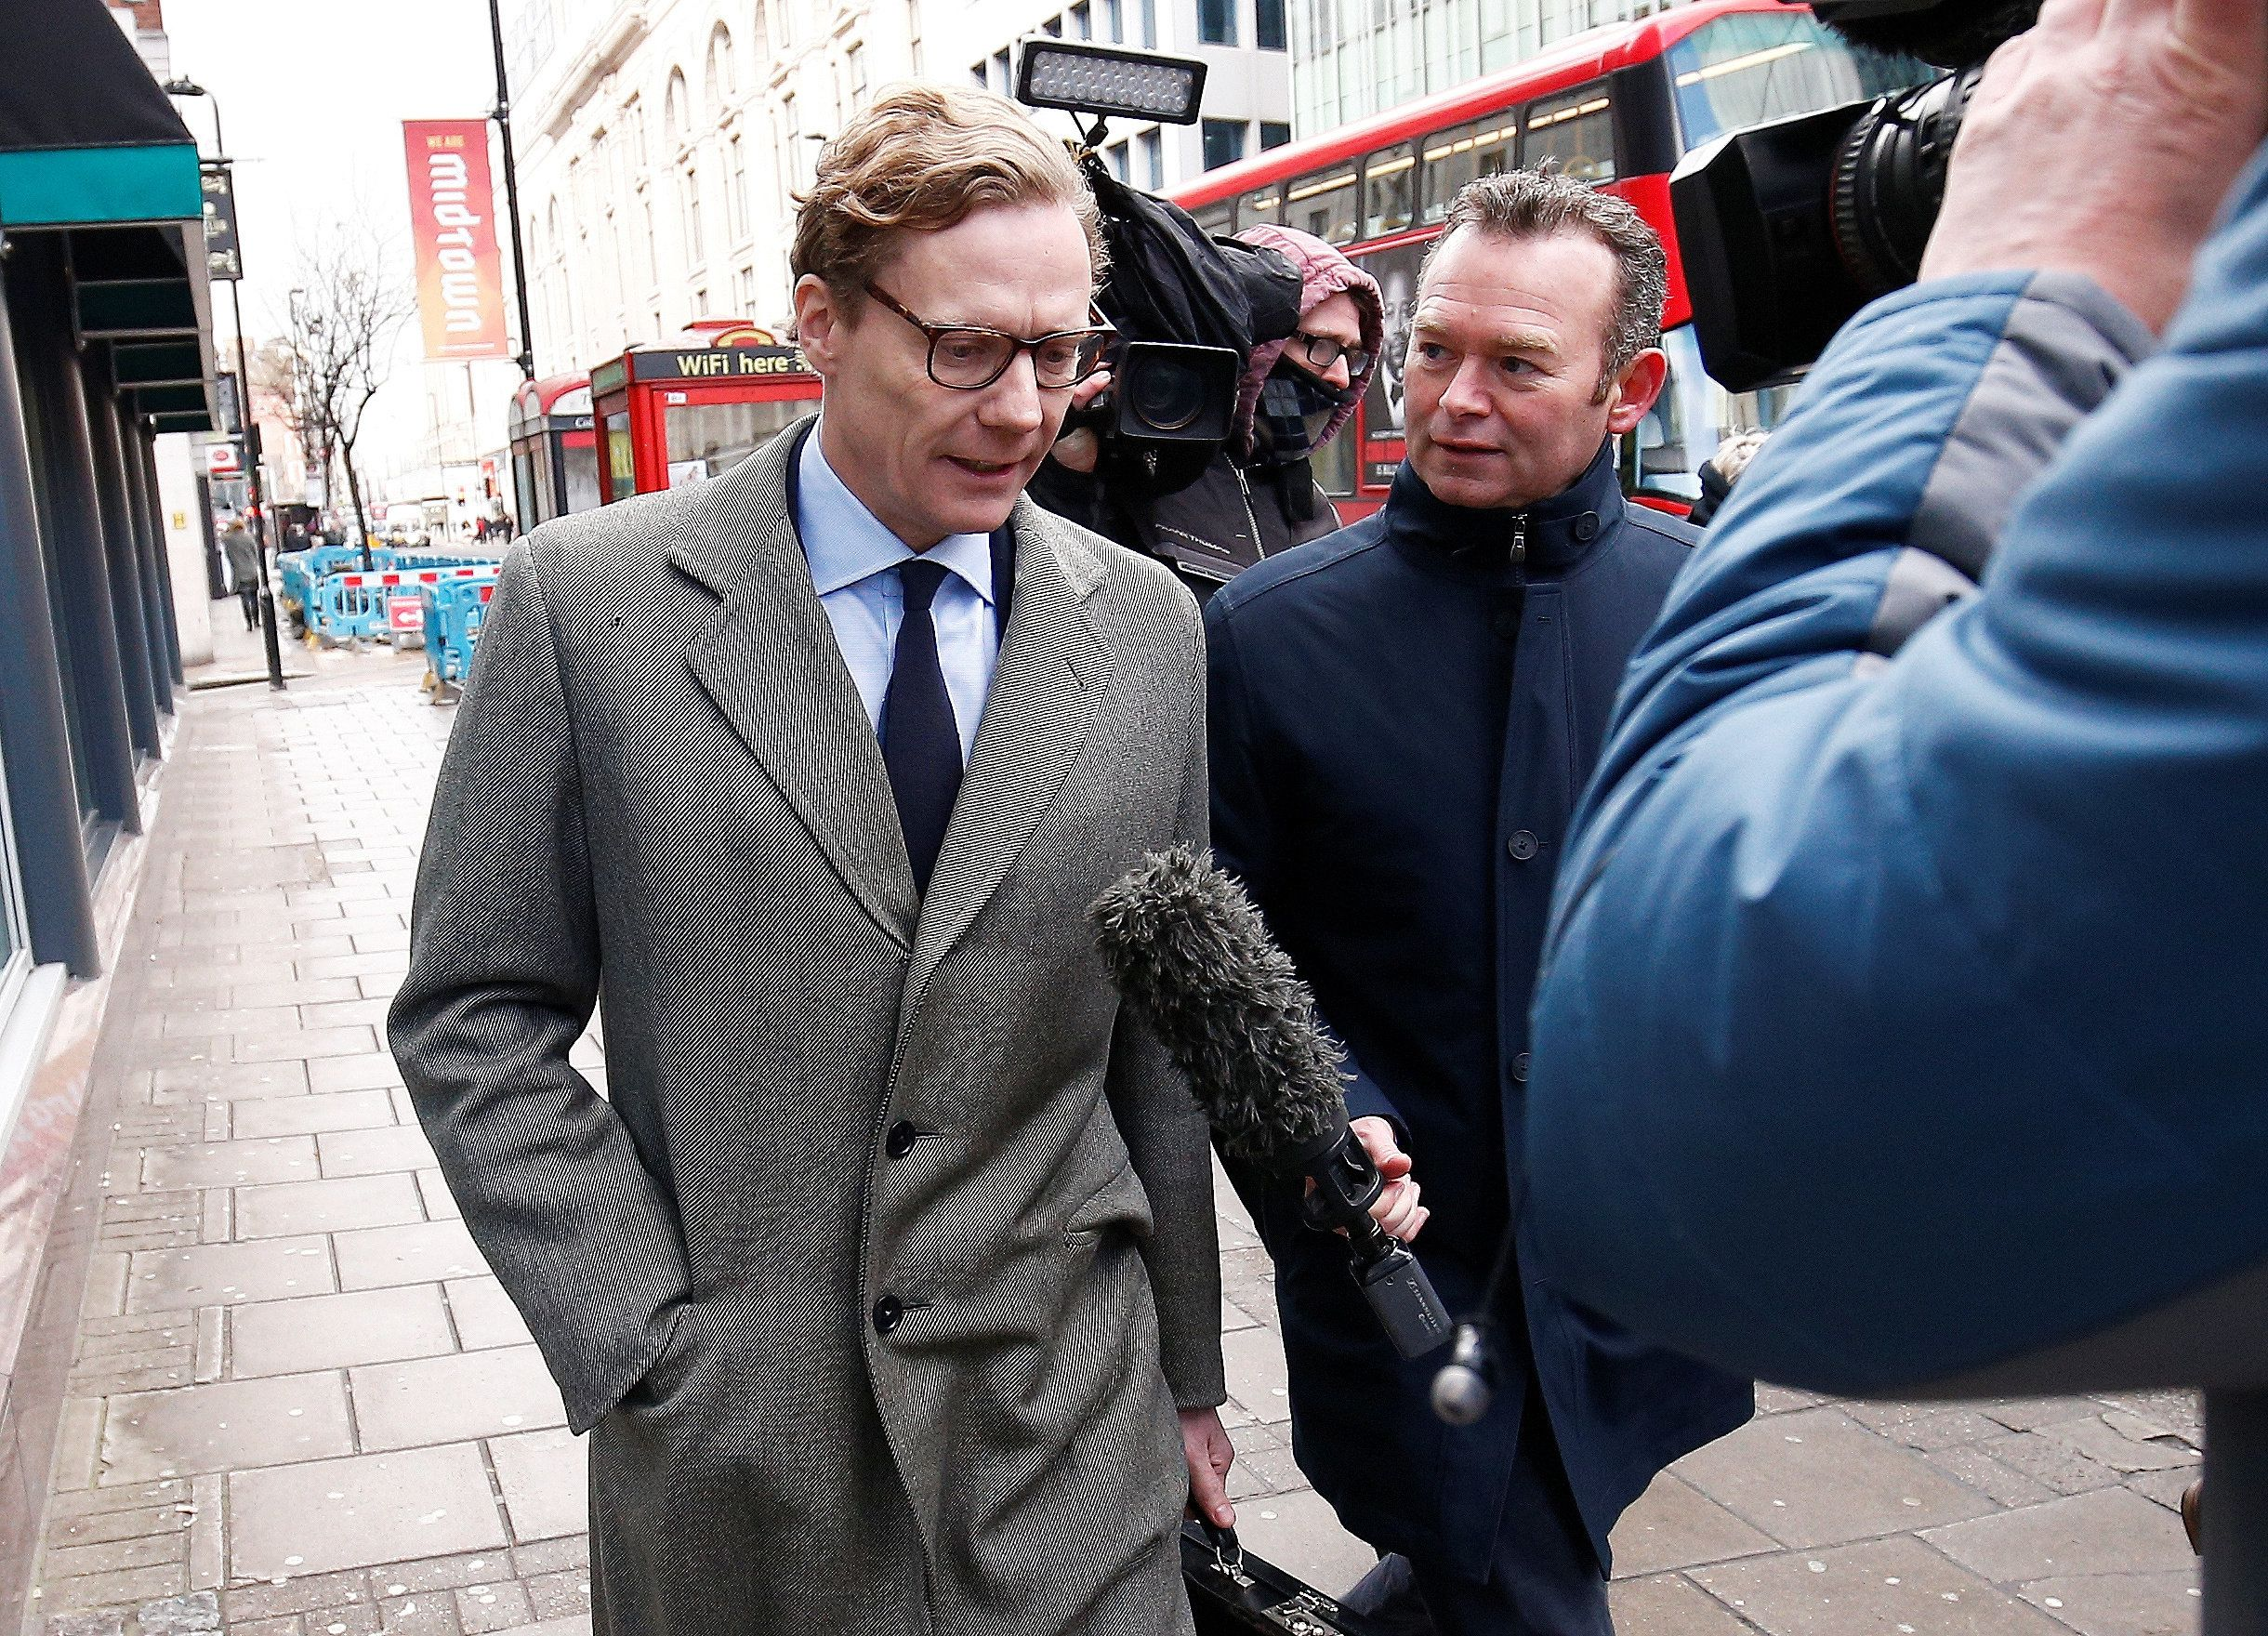 What You Need To Know About Cambridge Analytica